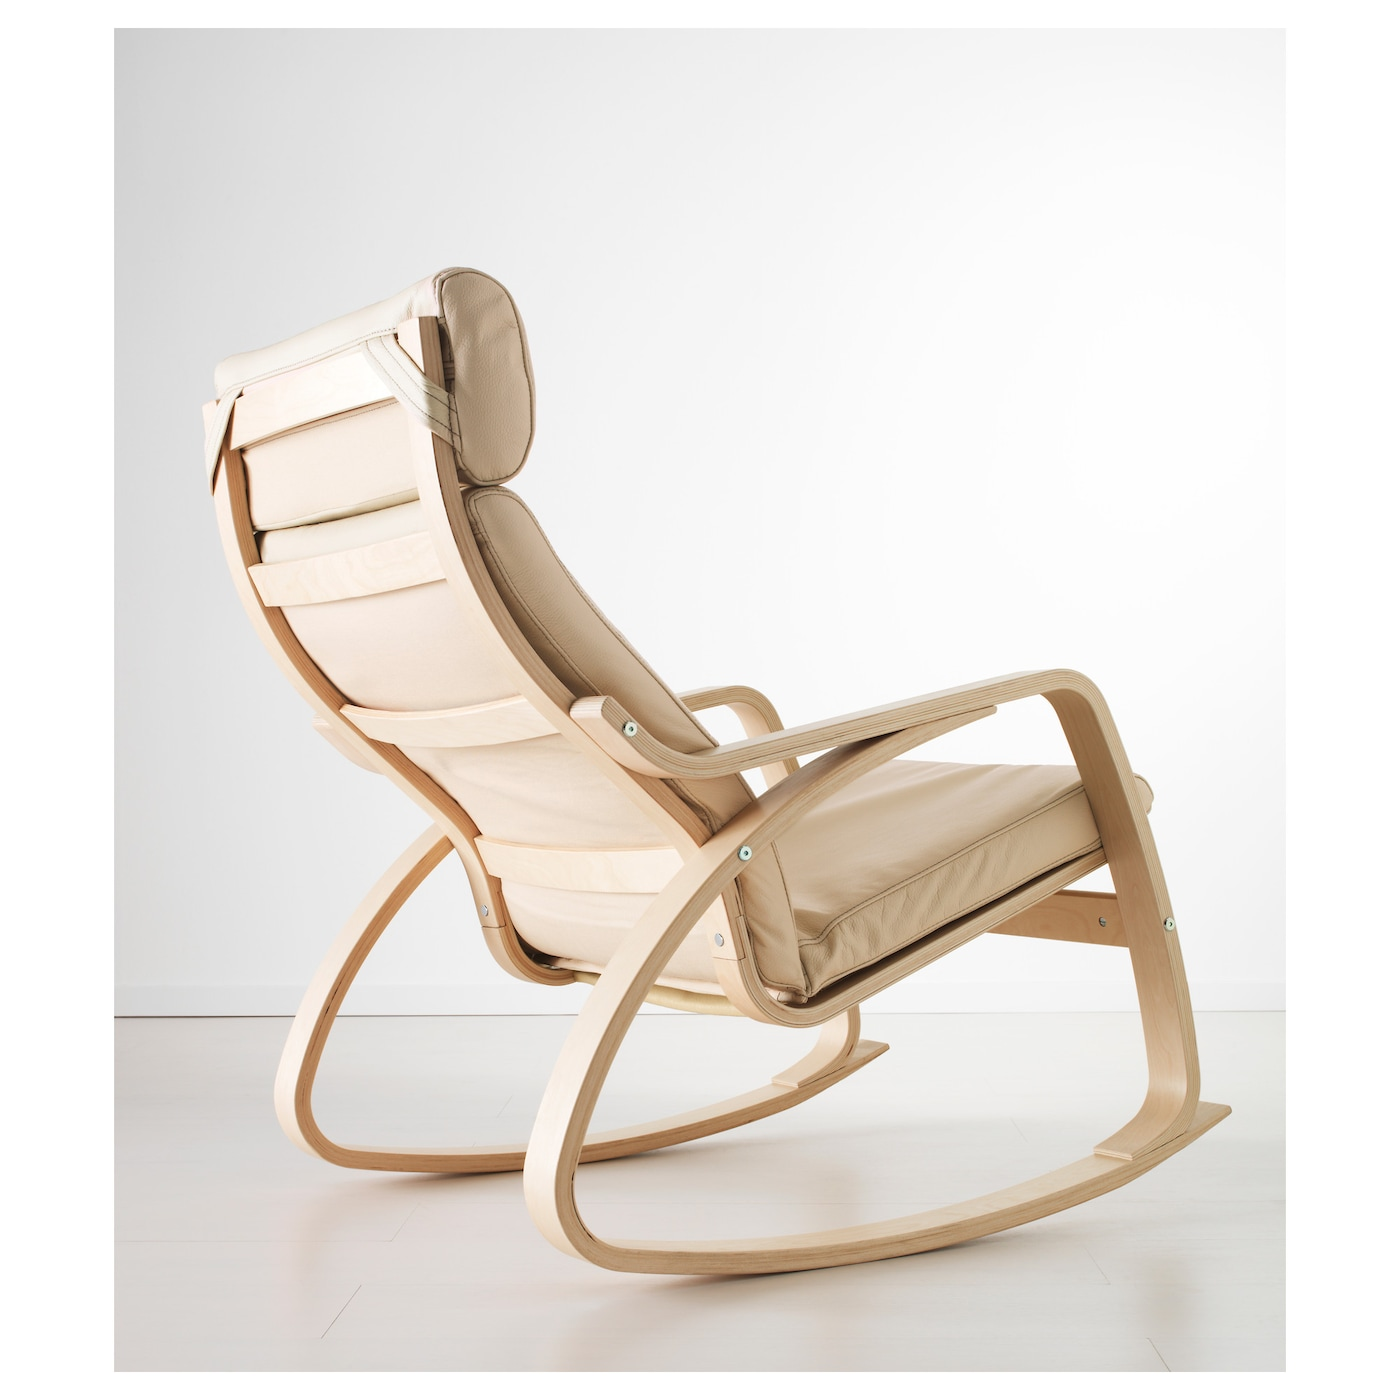 Ikea Poang Rocking Chair The High Back Gives Good Support For Your Neck